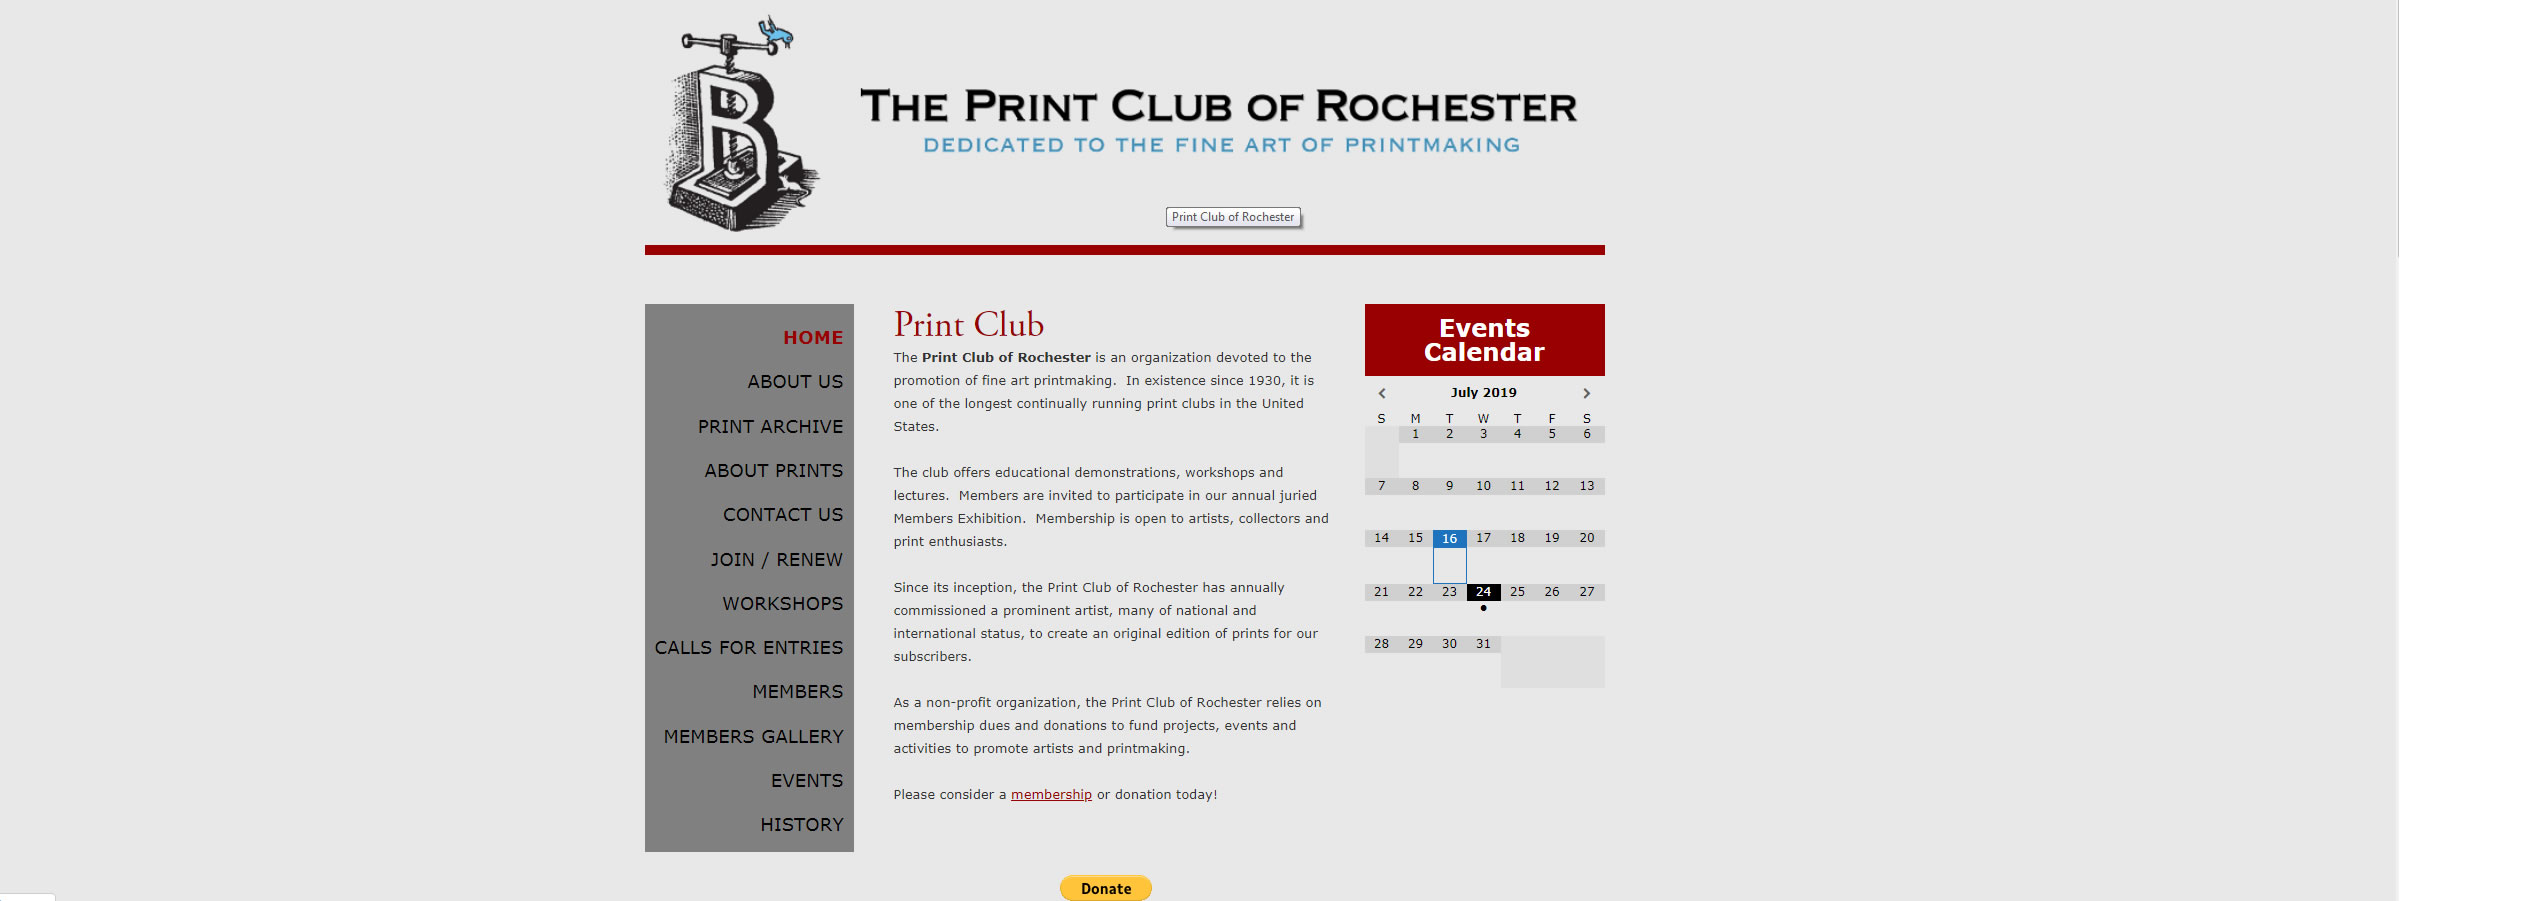 the_print_club_rochester_galeria_de_gravura